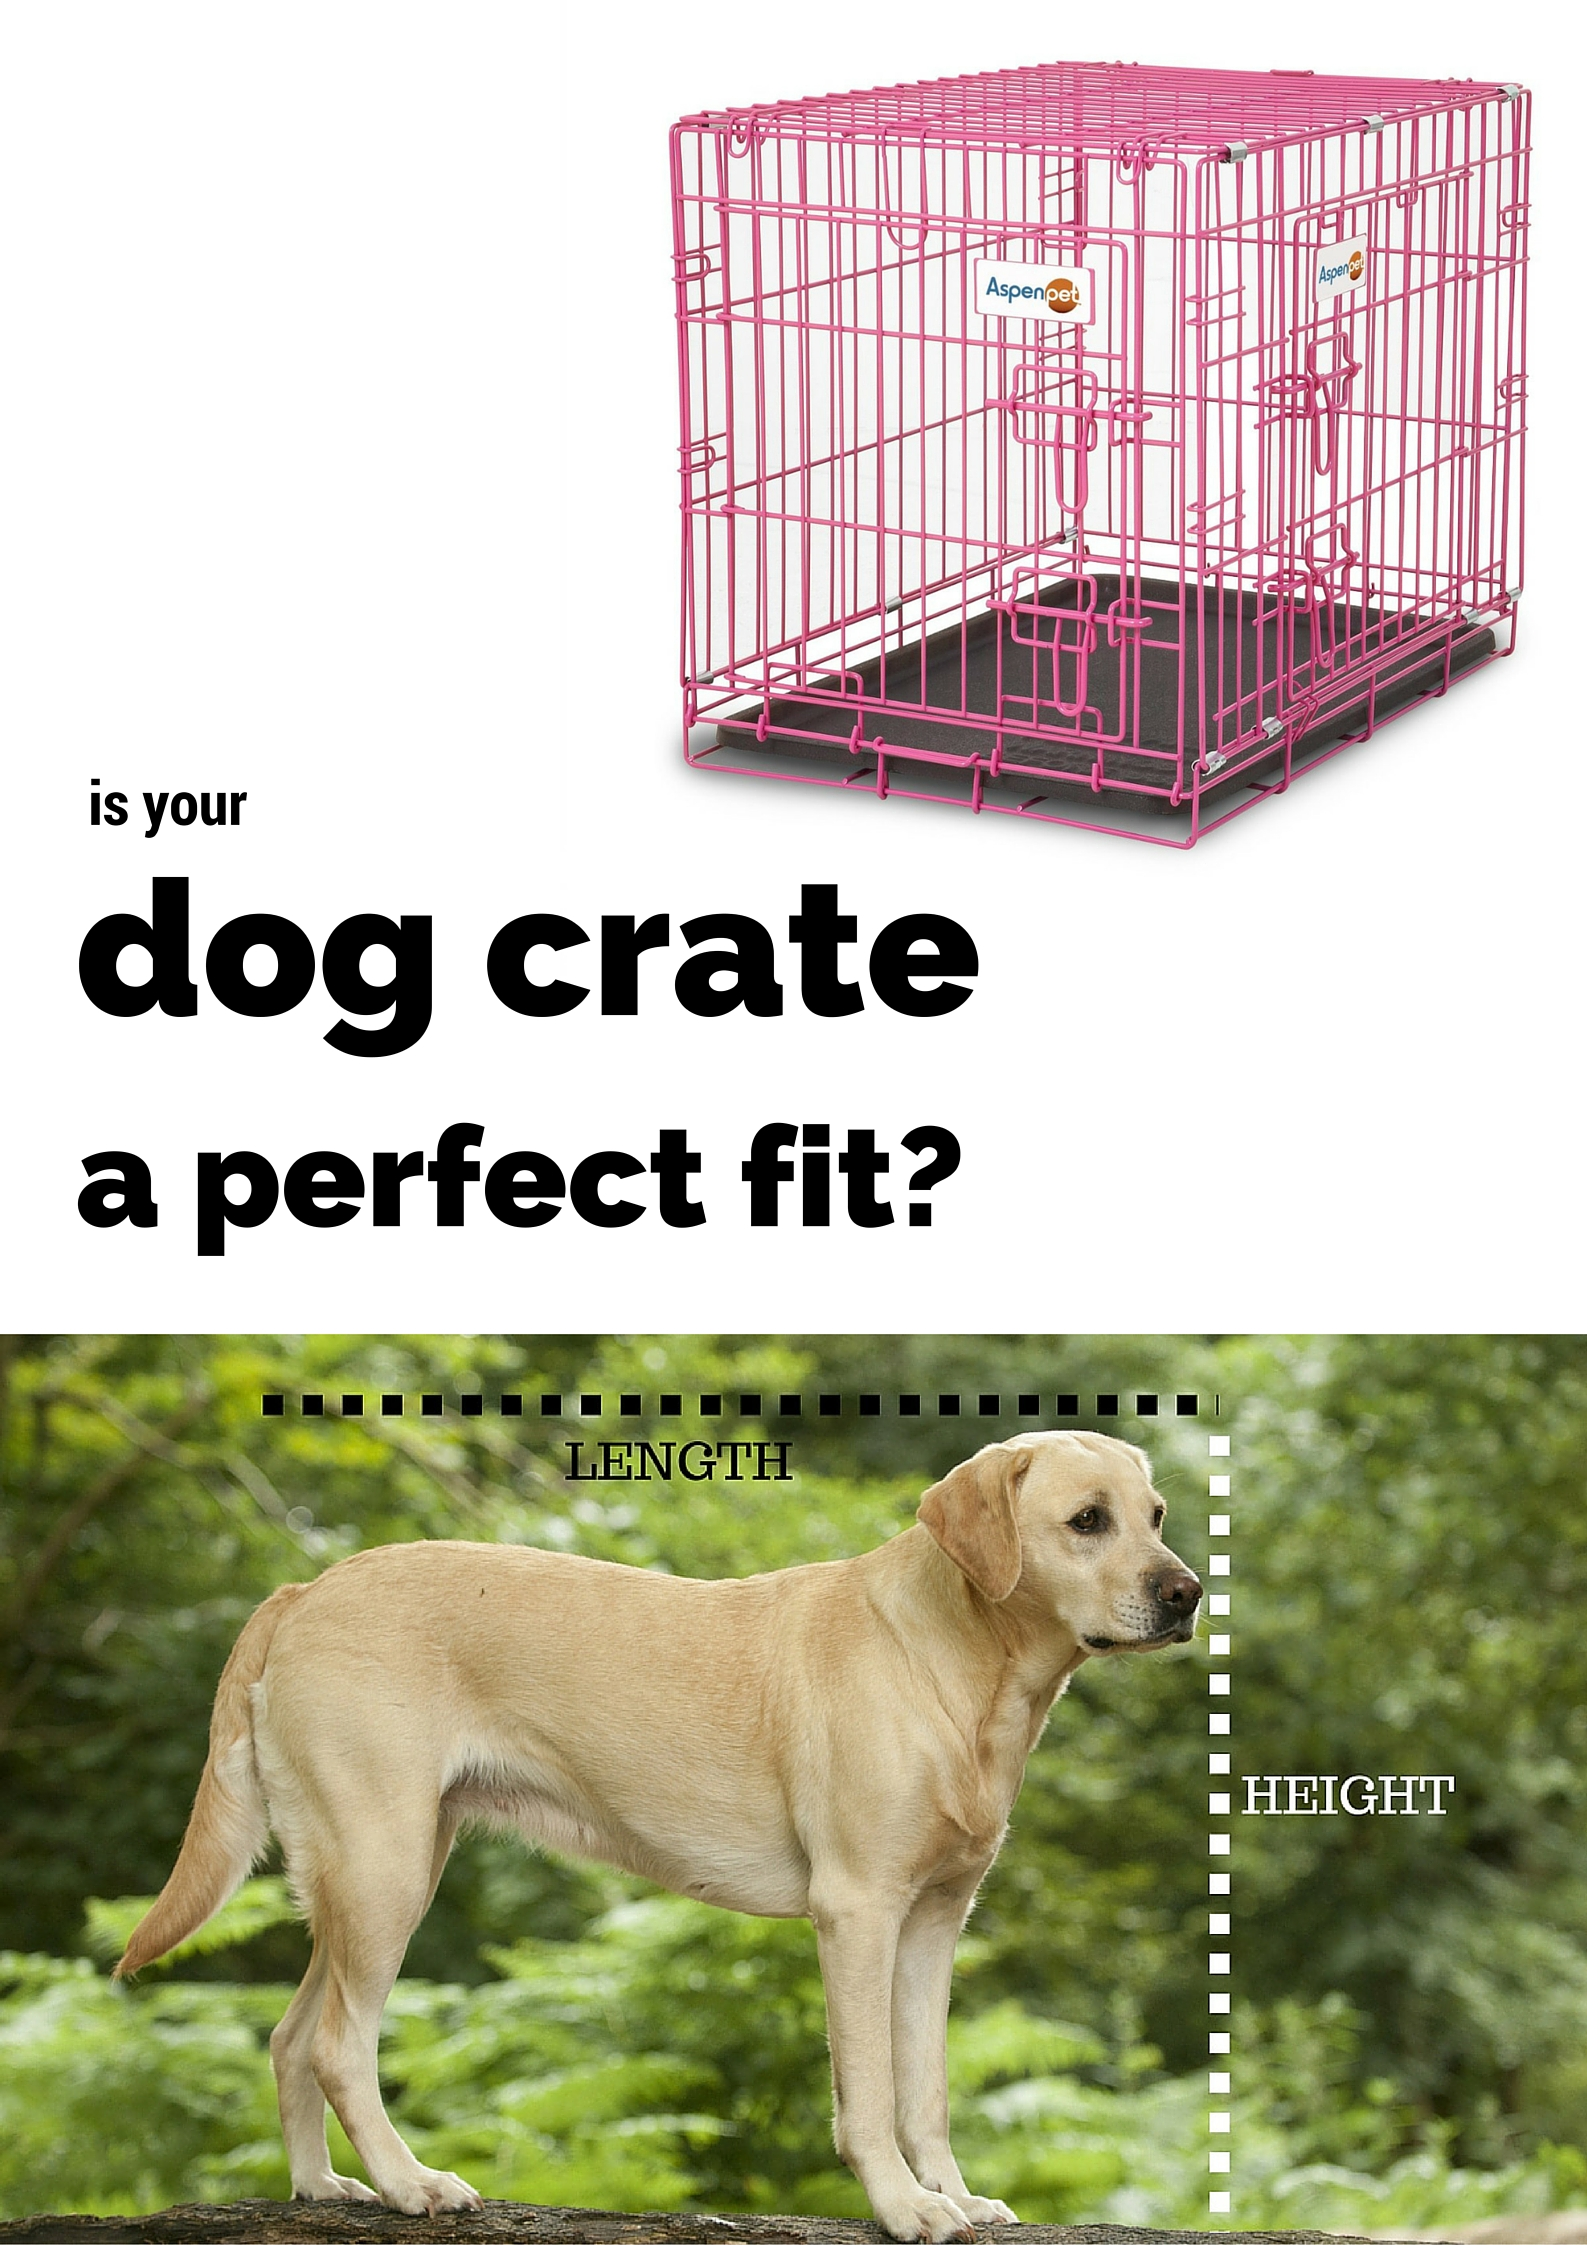 Best Dog Crates and Playpens for Labradors or Breeds